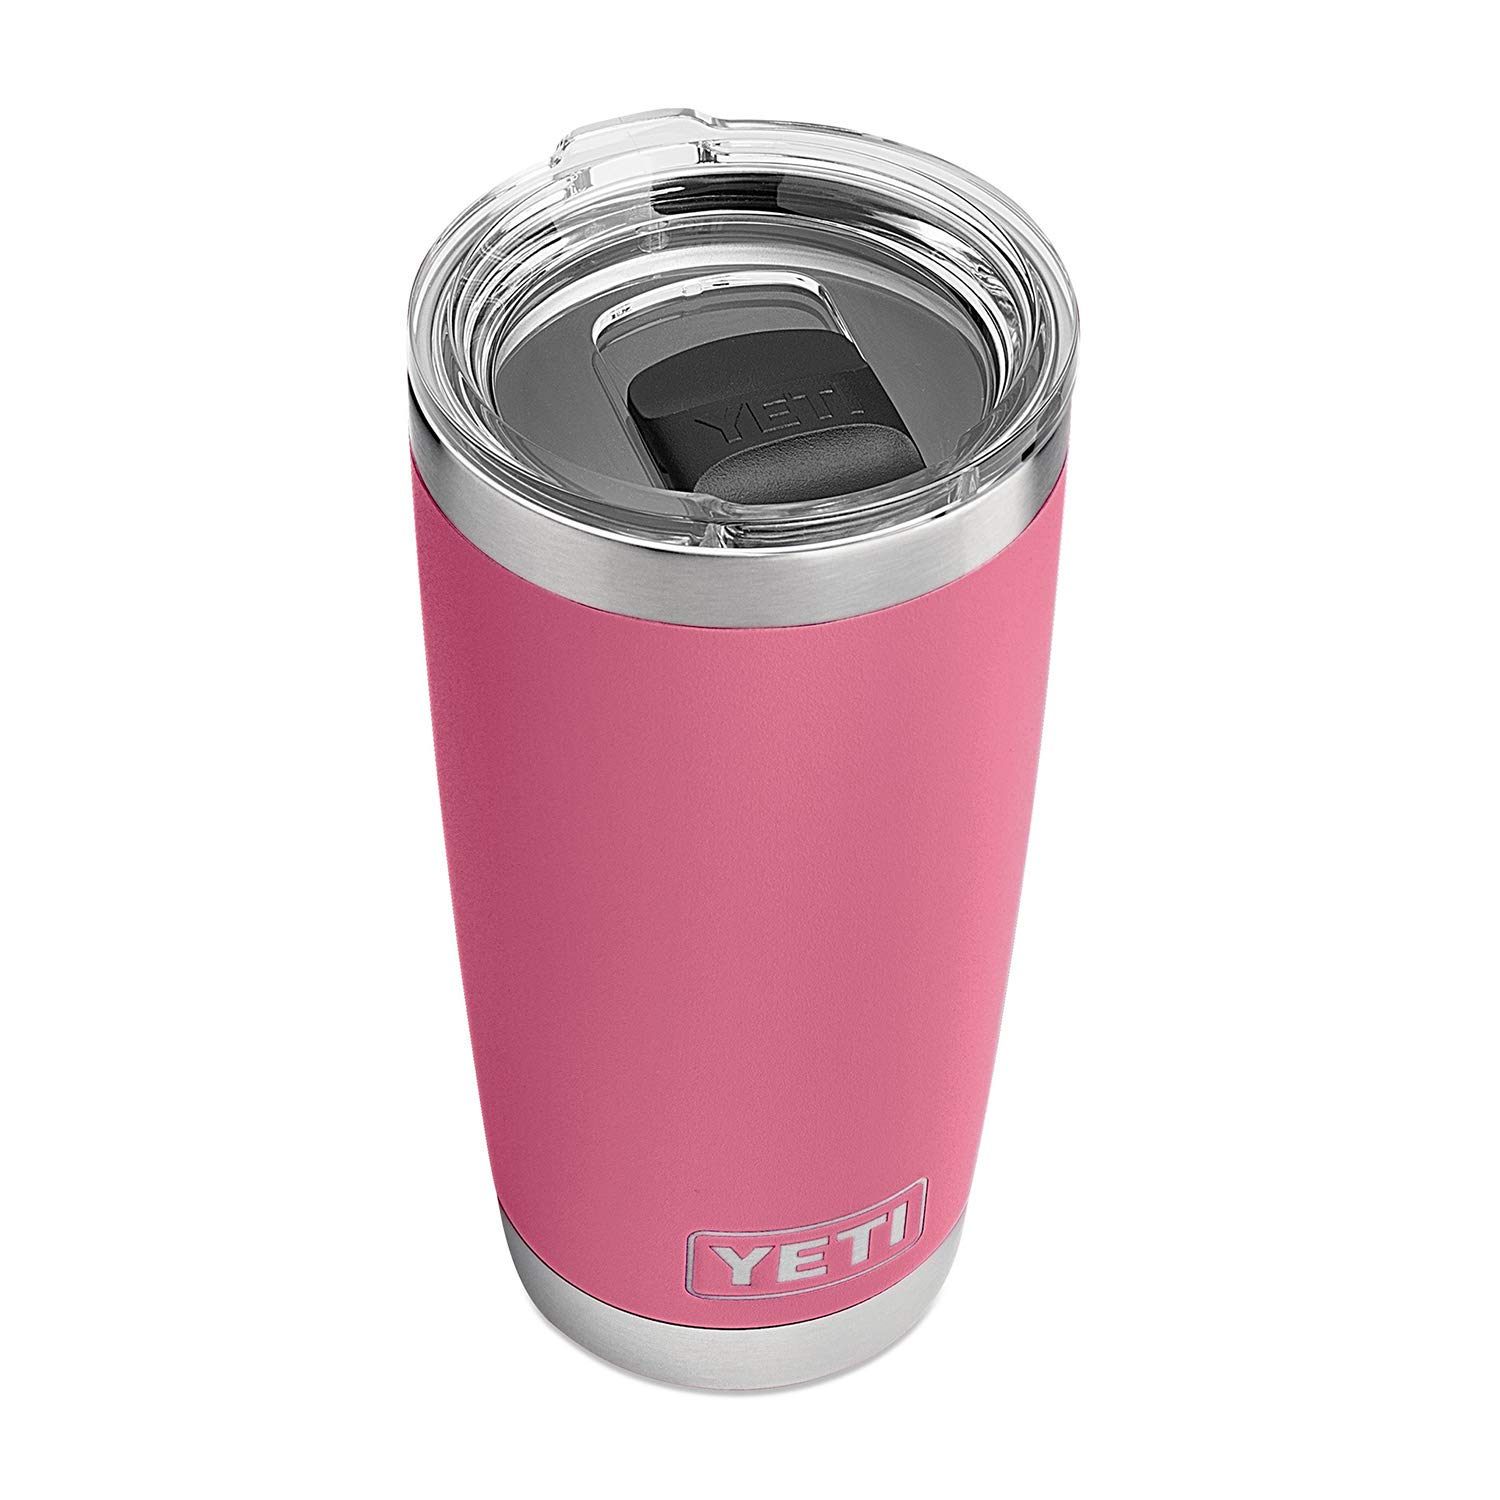 YETI Rambler 20 oz Stainless Steel Vacuum Insulated Tumbler w/MagSlider Lid, Harbor Pink